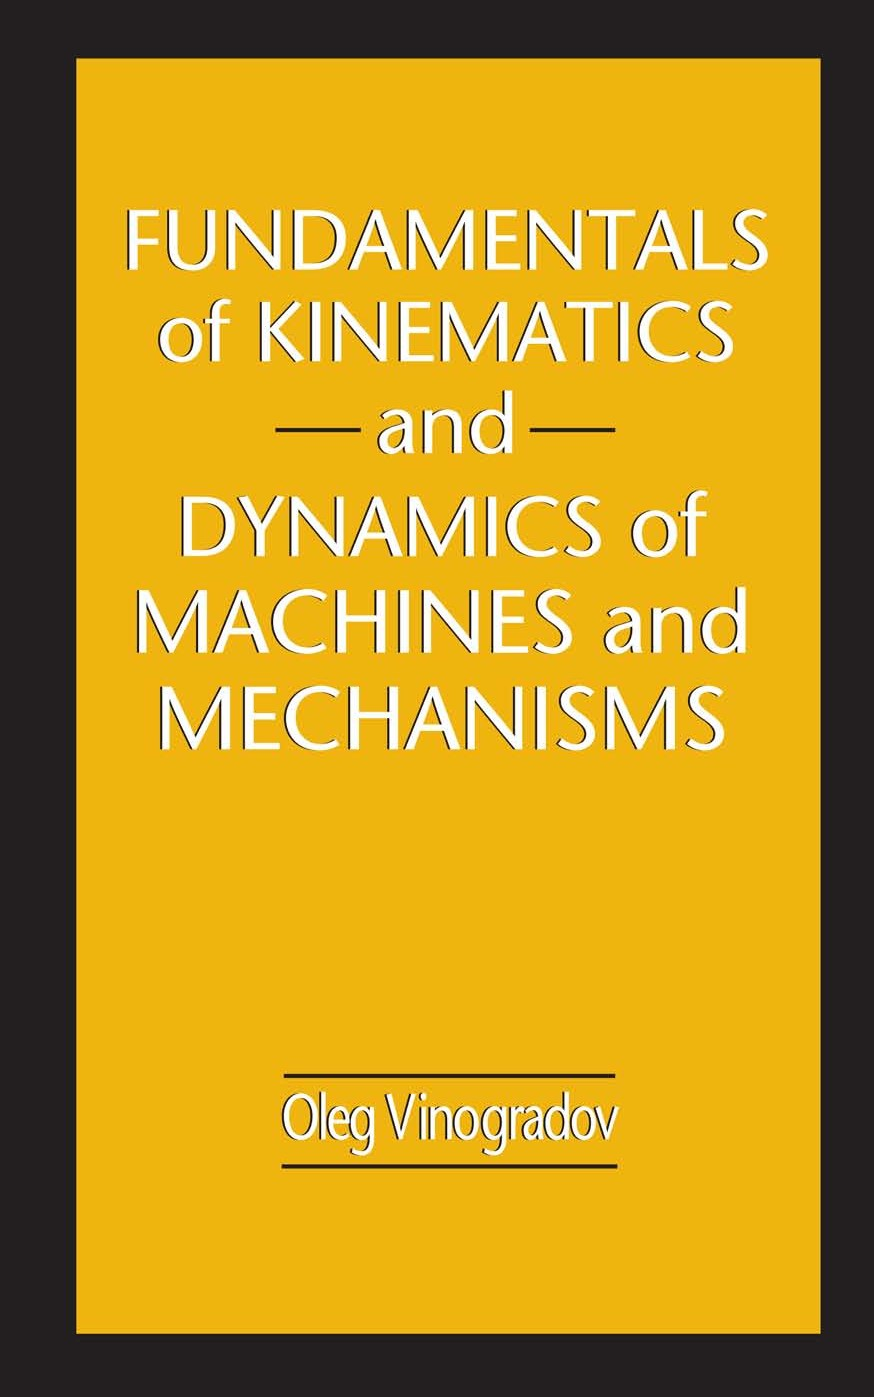 Fundamentals-of-kinematics-and-Dynamics-of-Machines-PDF